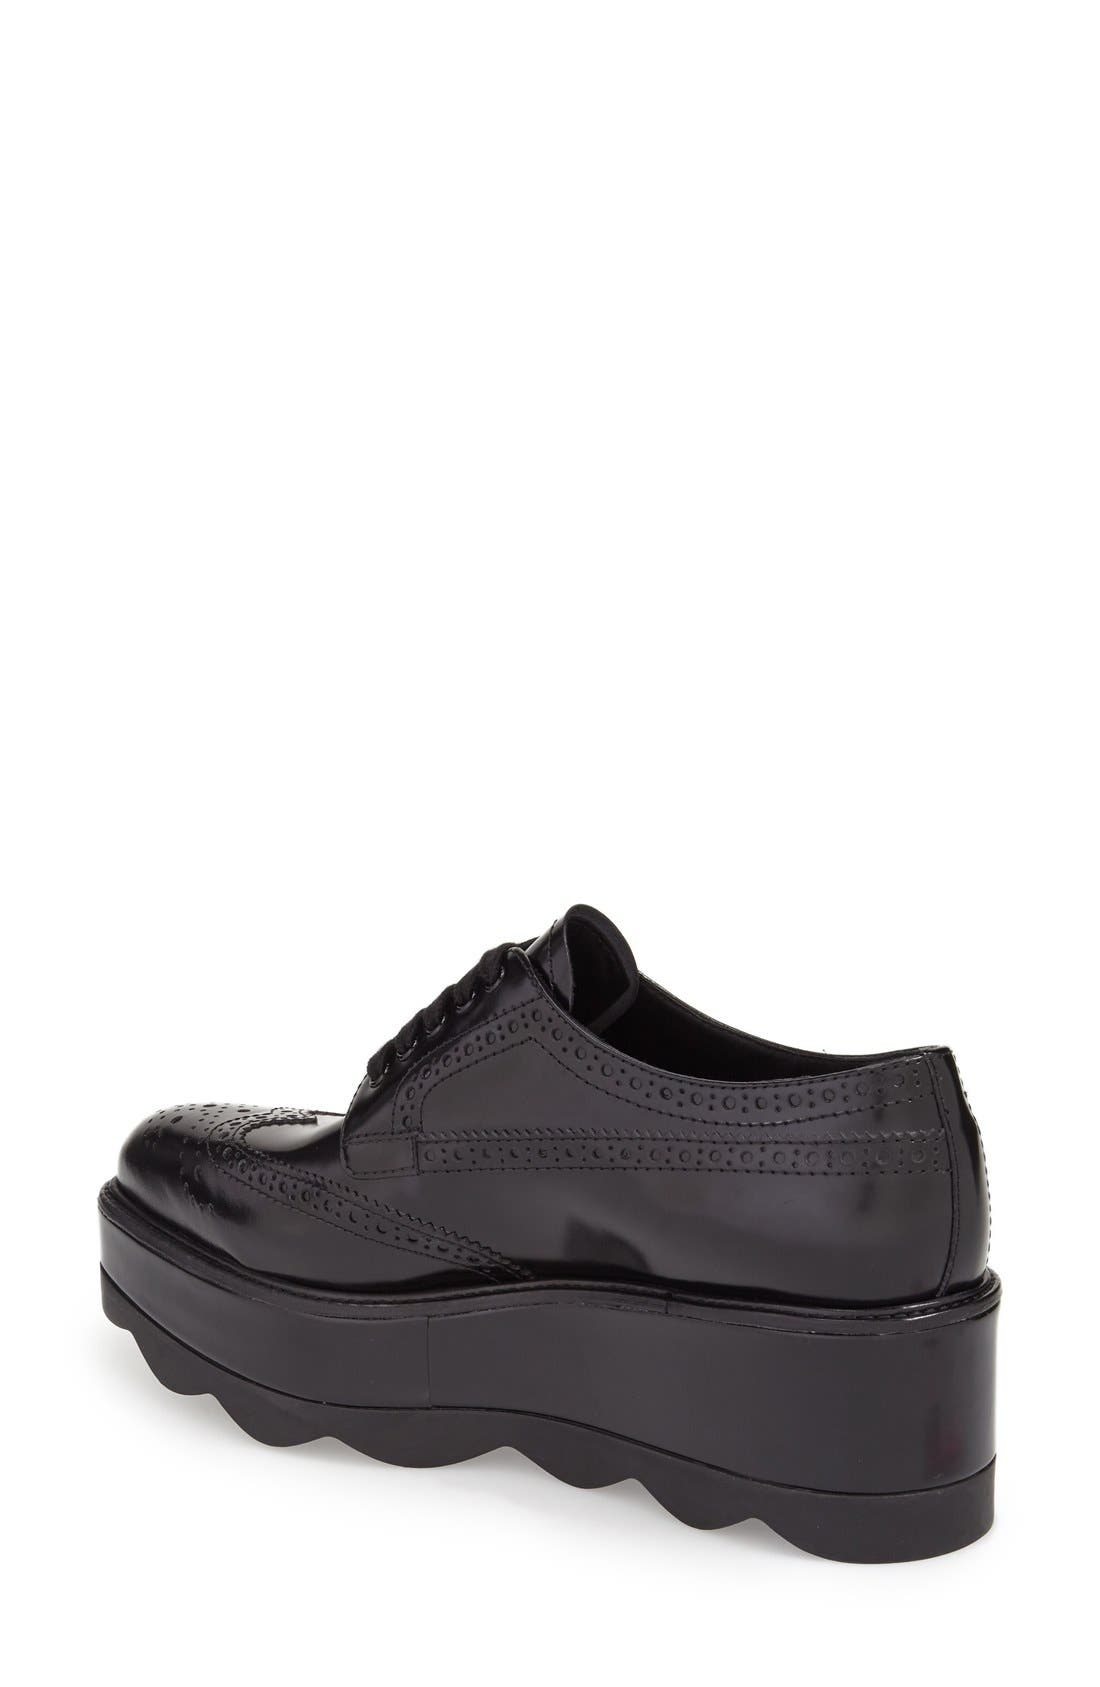 Scalloped Platform Oxford,                             Alternate thumbnail 2, color,                             Black